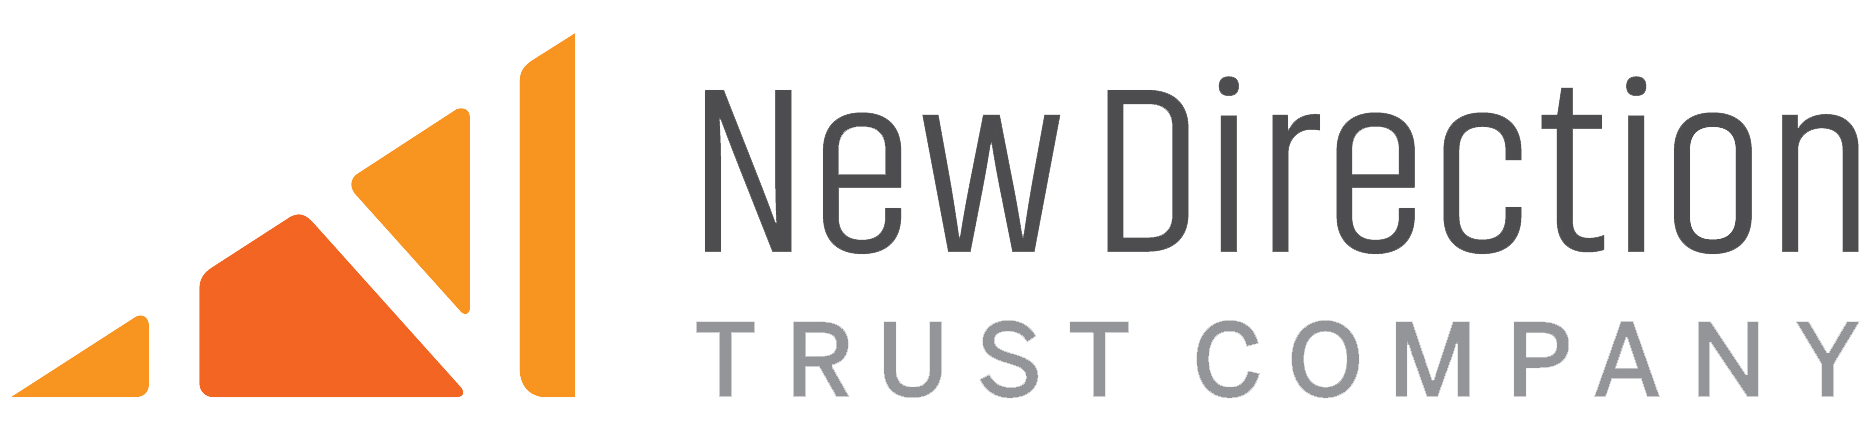 NEW DIRECTION TRUST COMPANY.png